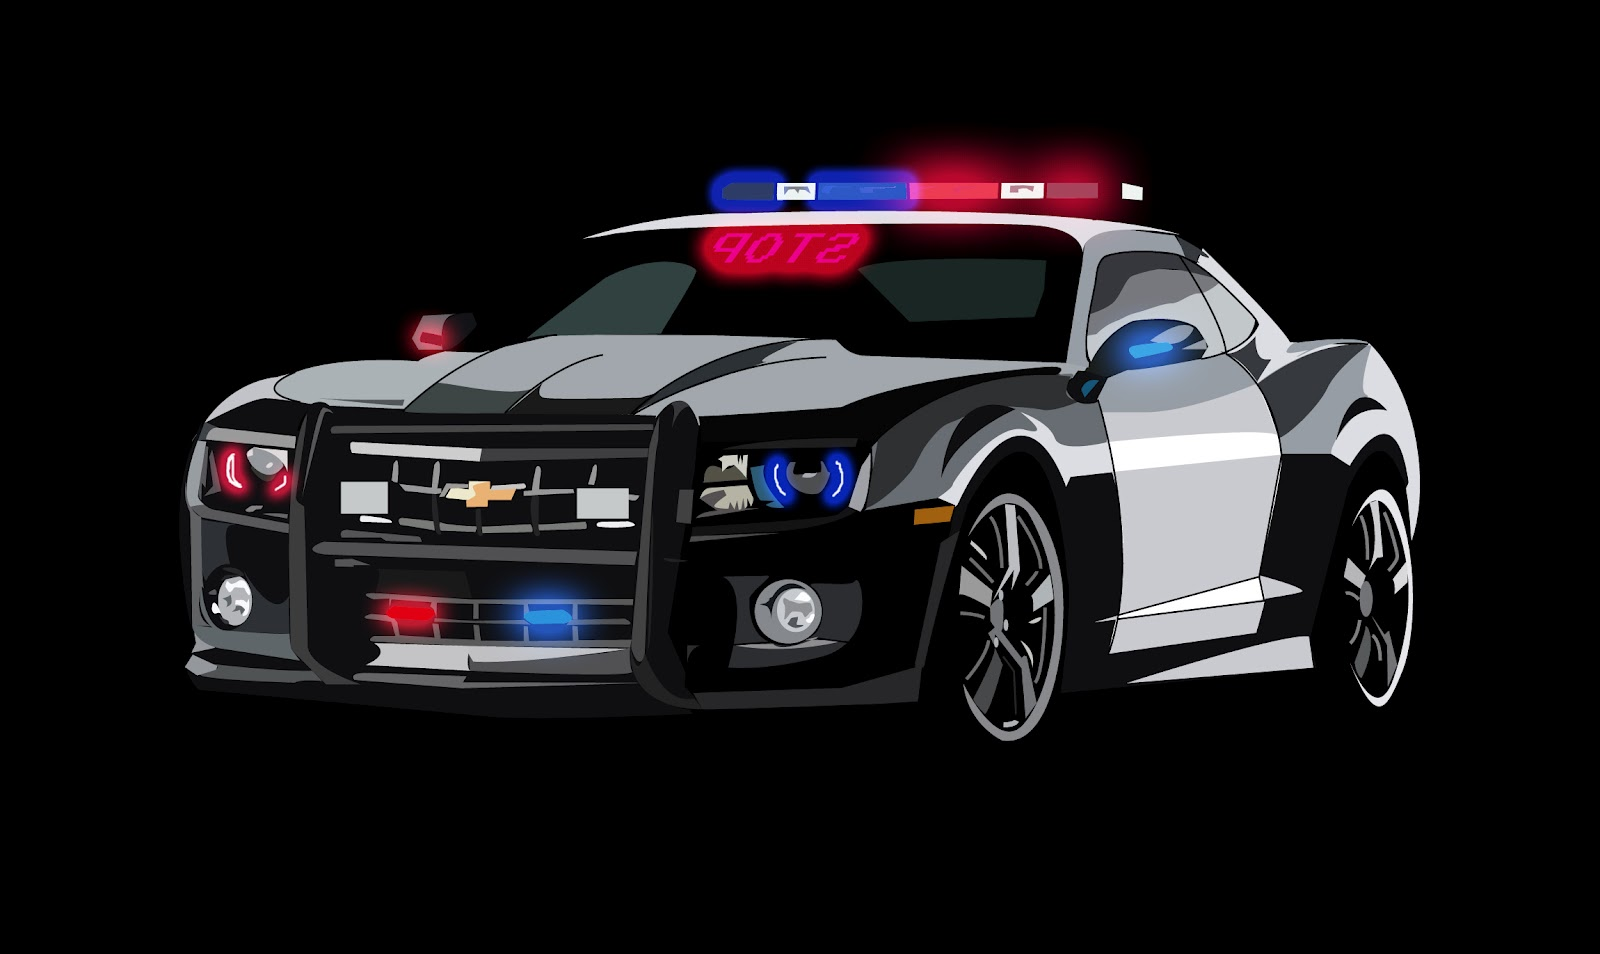 Best Camaro Black Police Car Wallpaper New Best Wallpapers 2011 1600x954